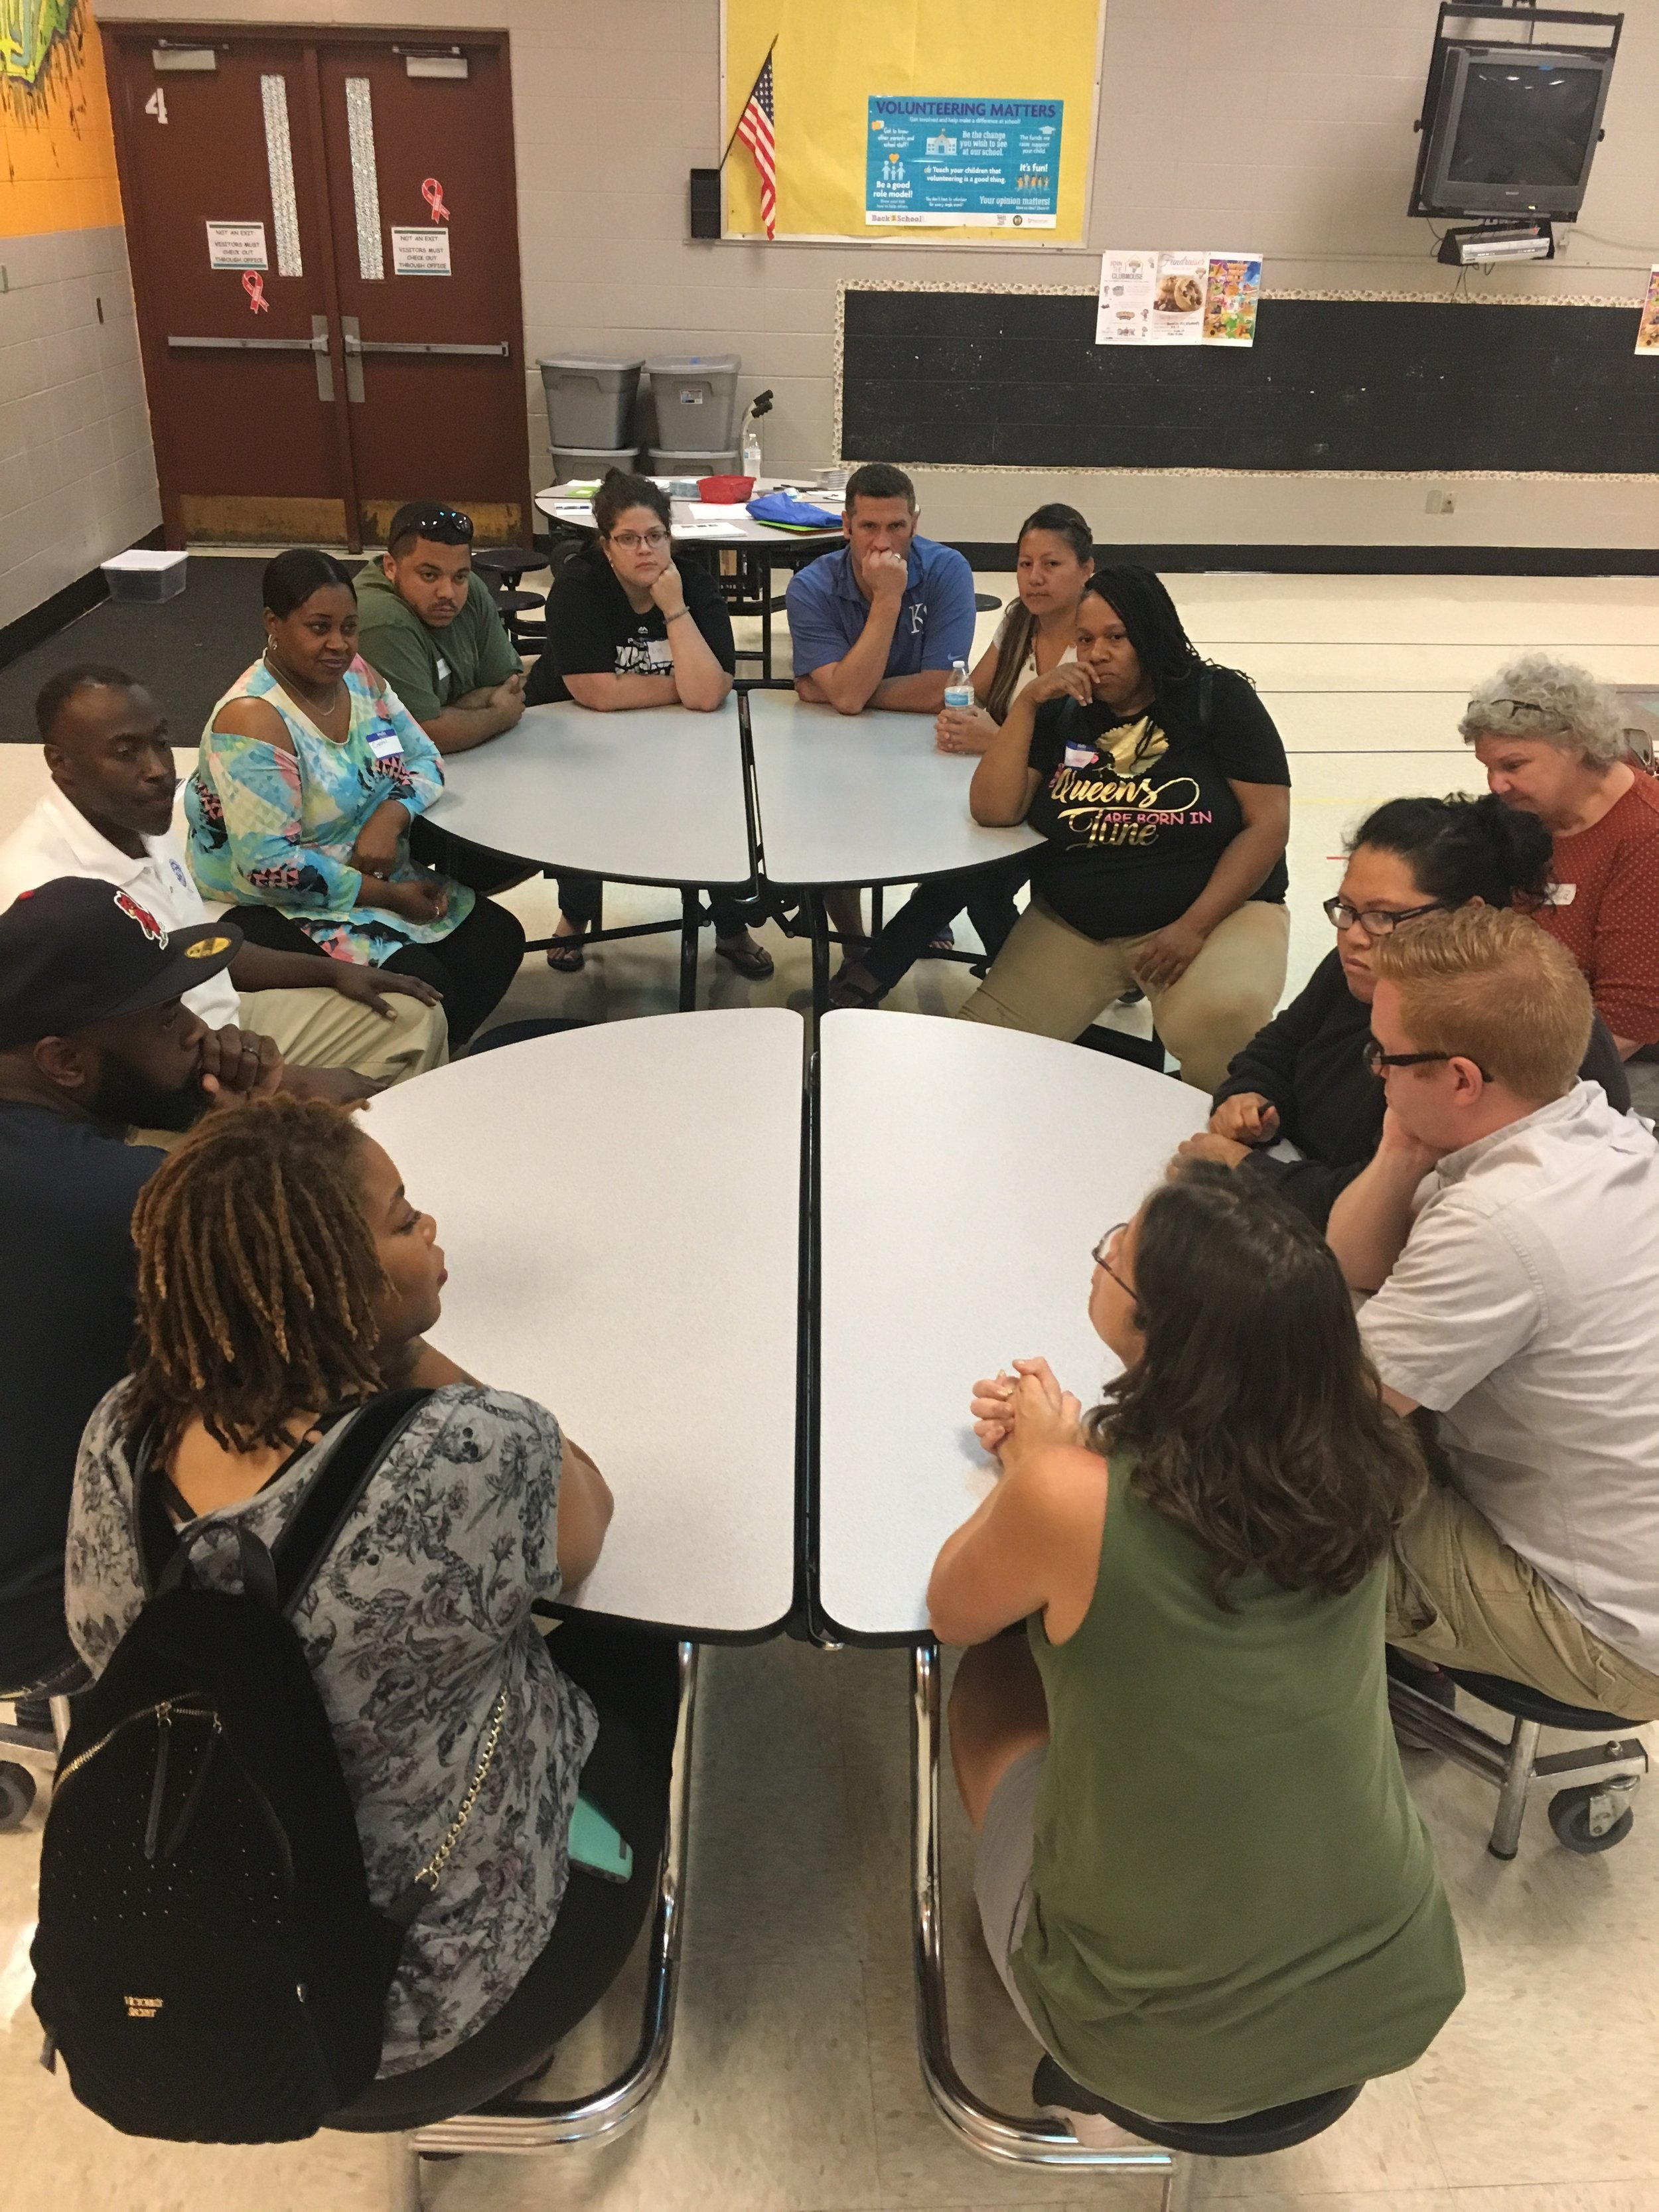 Support groups gather parents into community.